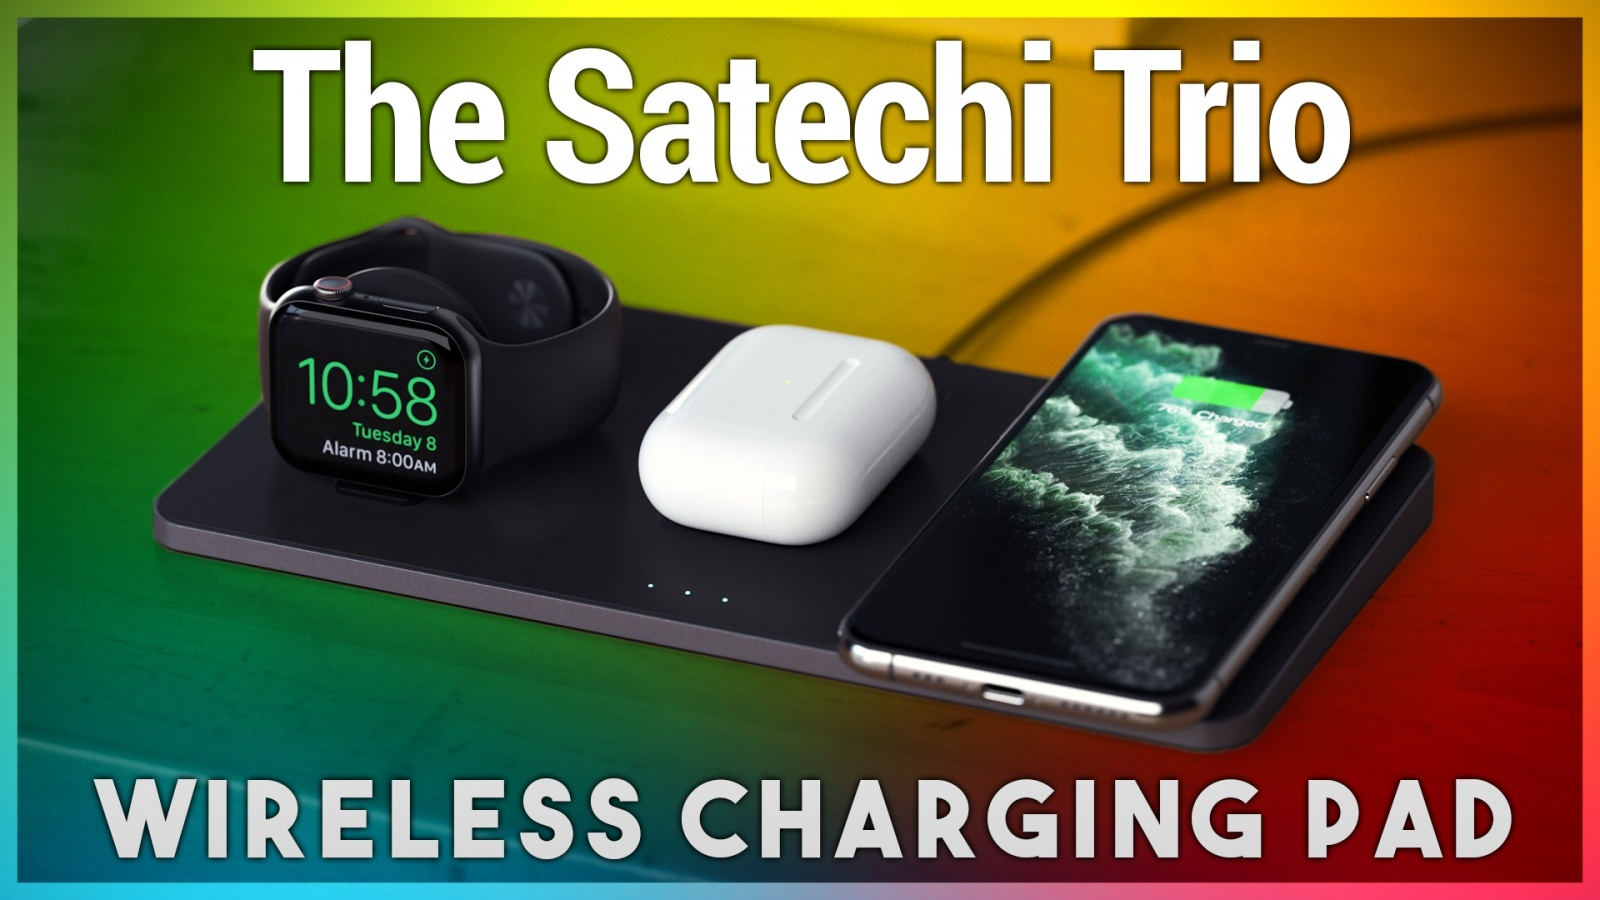 Want a Way to Charge Your iPhone, Apple Watch, and AirPods All at Once? The Satechi Trio Wireless Charging Pad Does That!